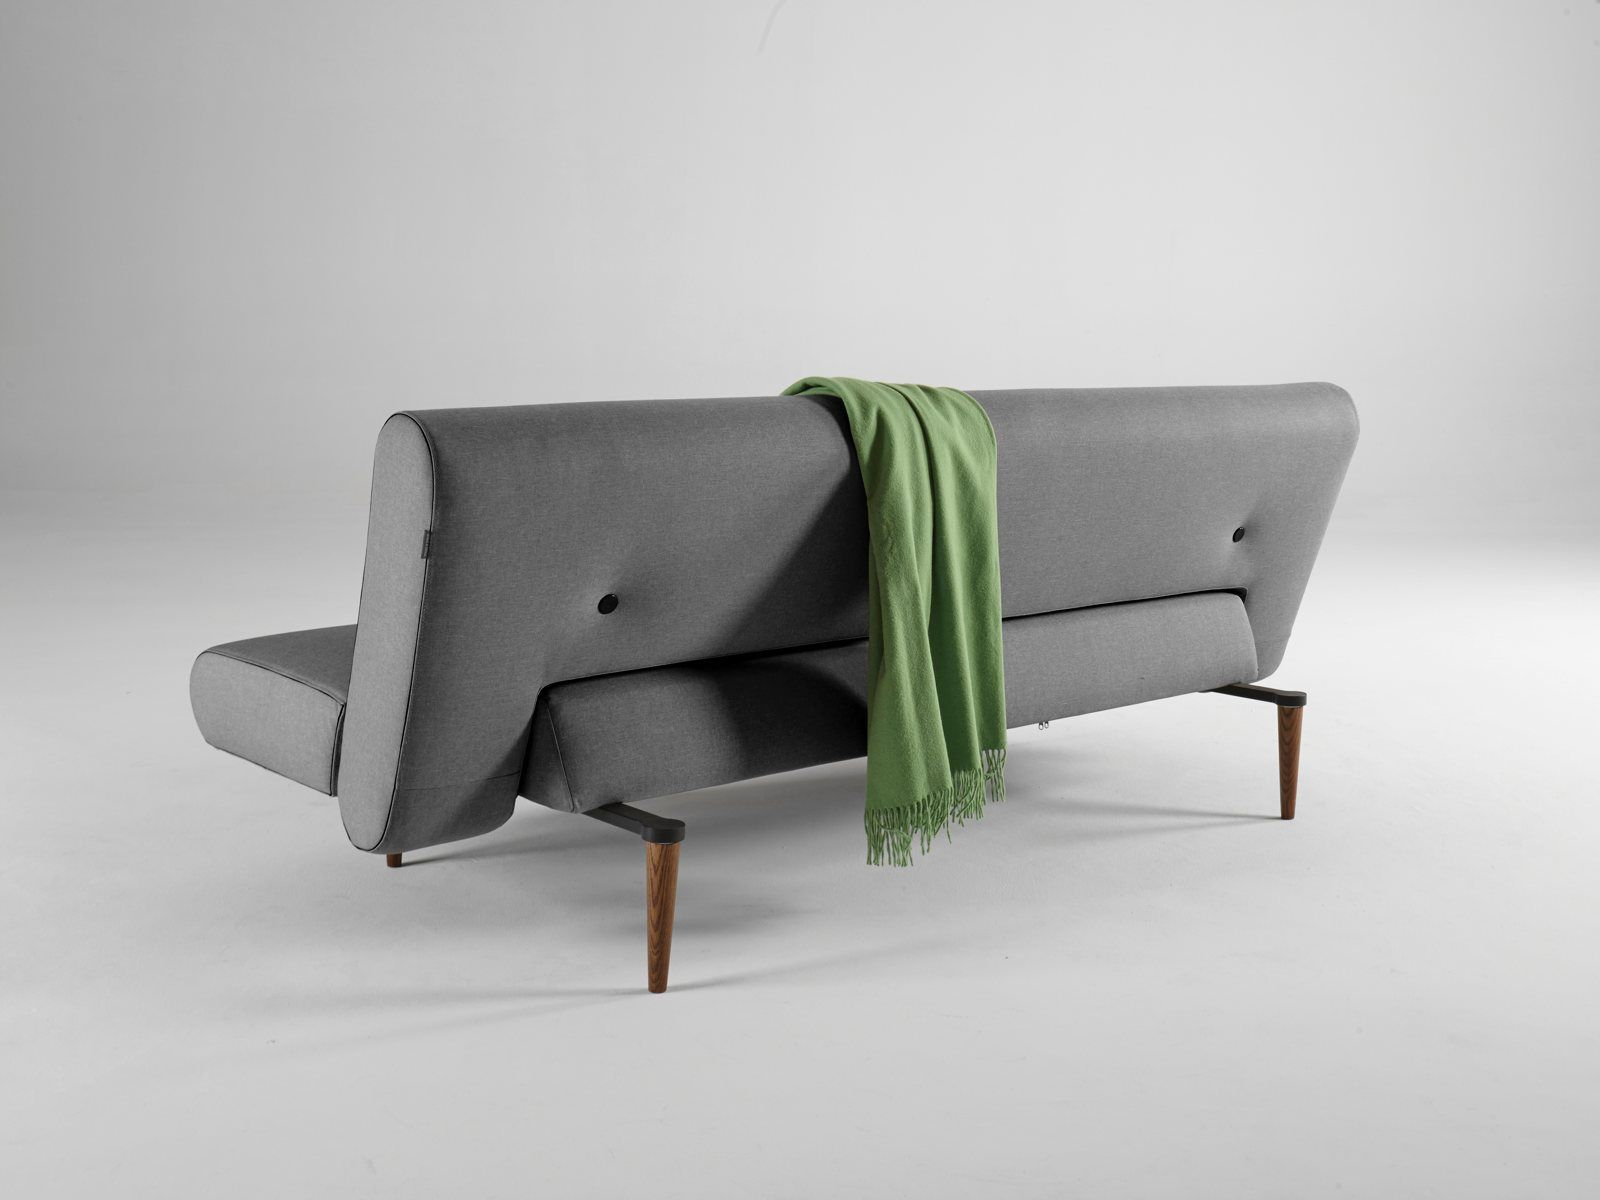 Unfurl Sofa Bed By Andreas Lund Design, Flemming Højfeldt And Per Weiss For  Innovation | UP Interiors